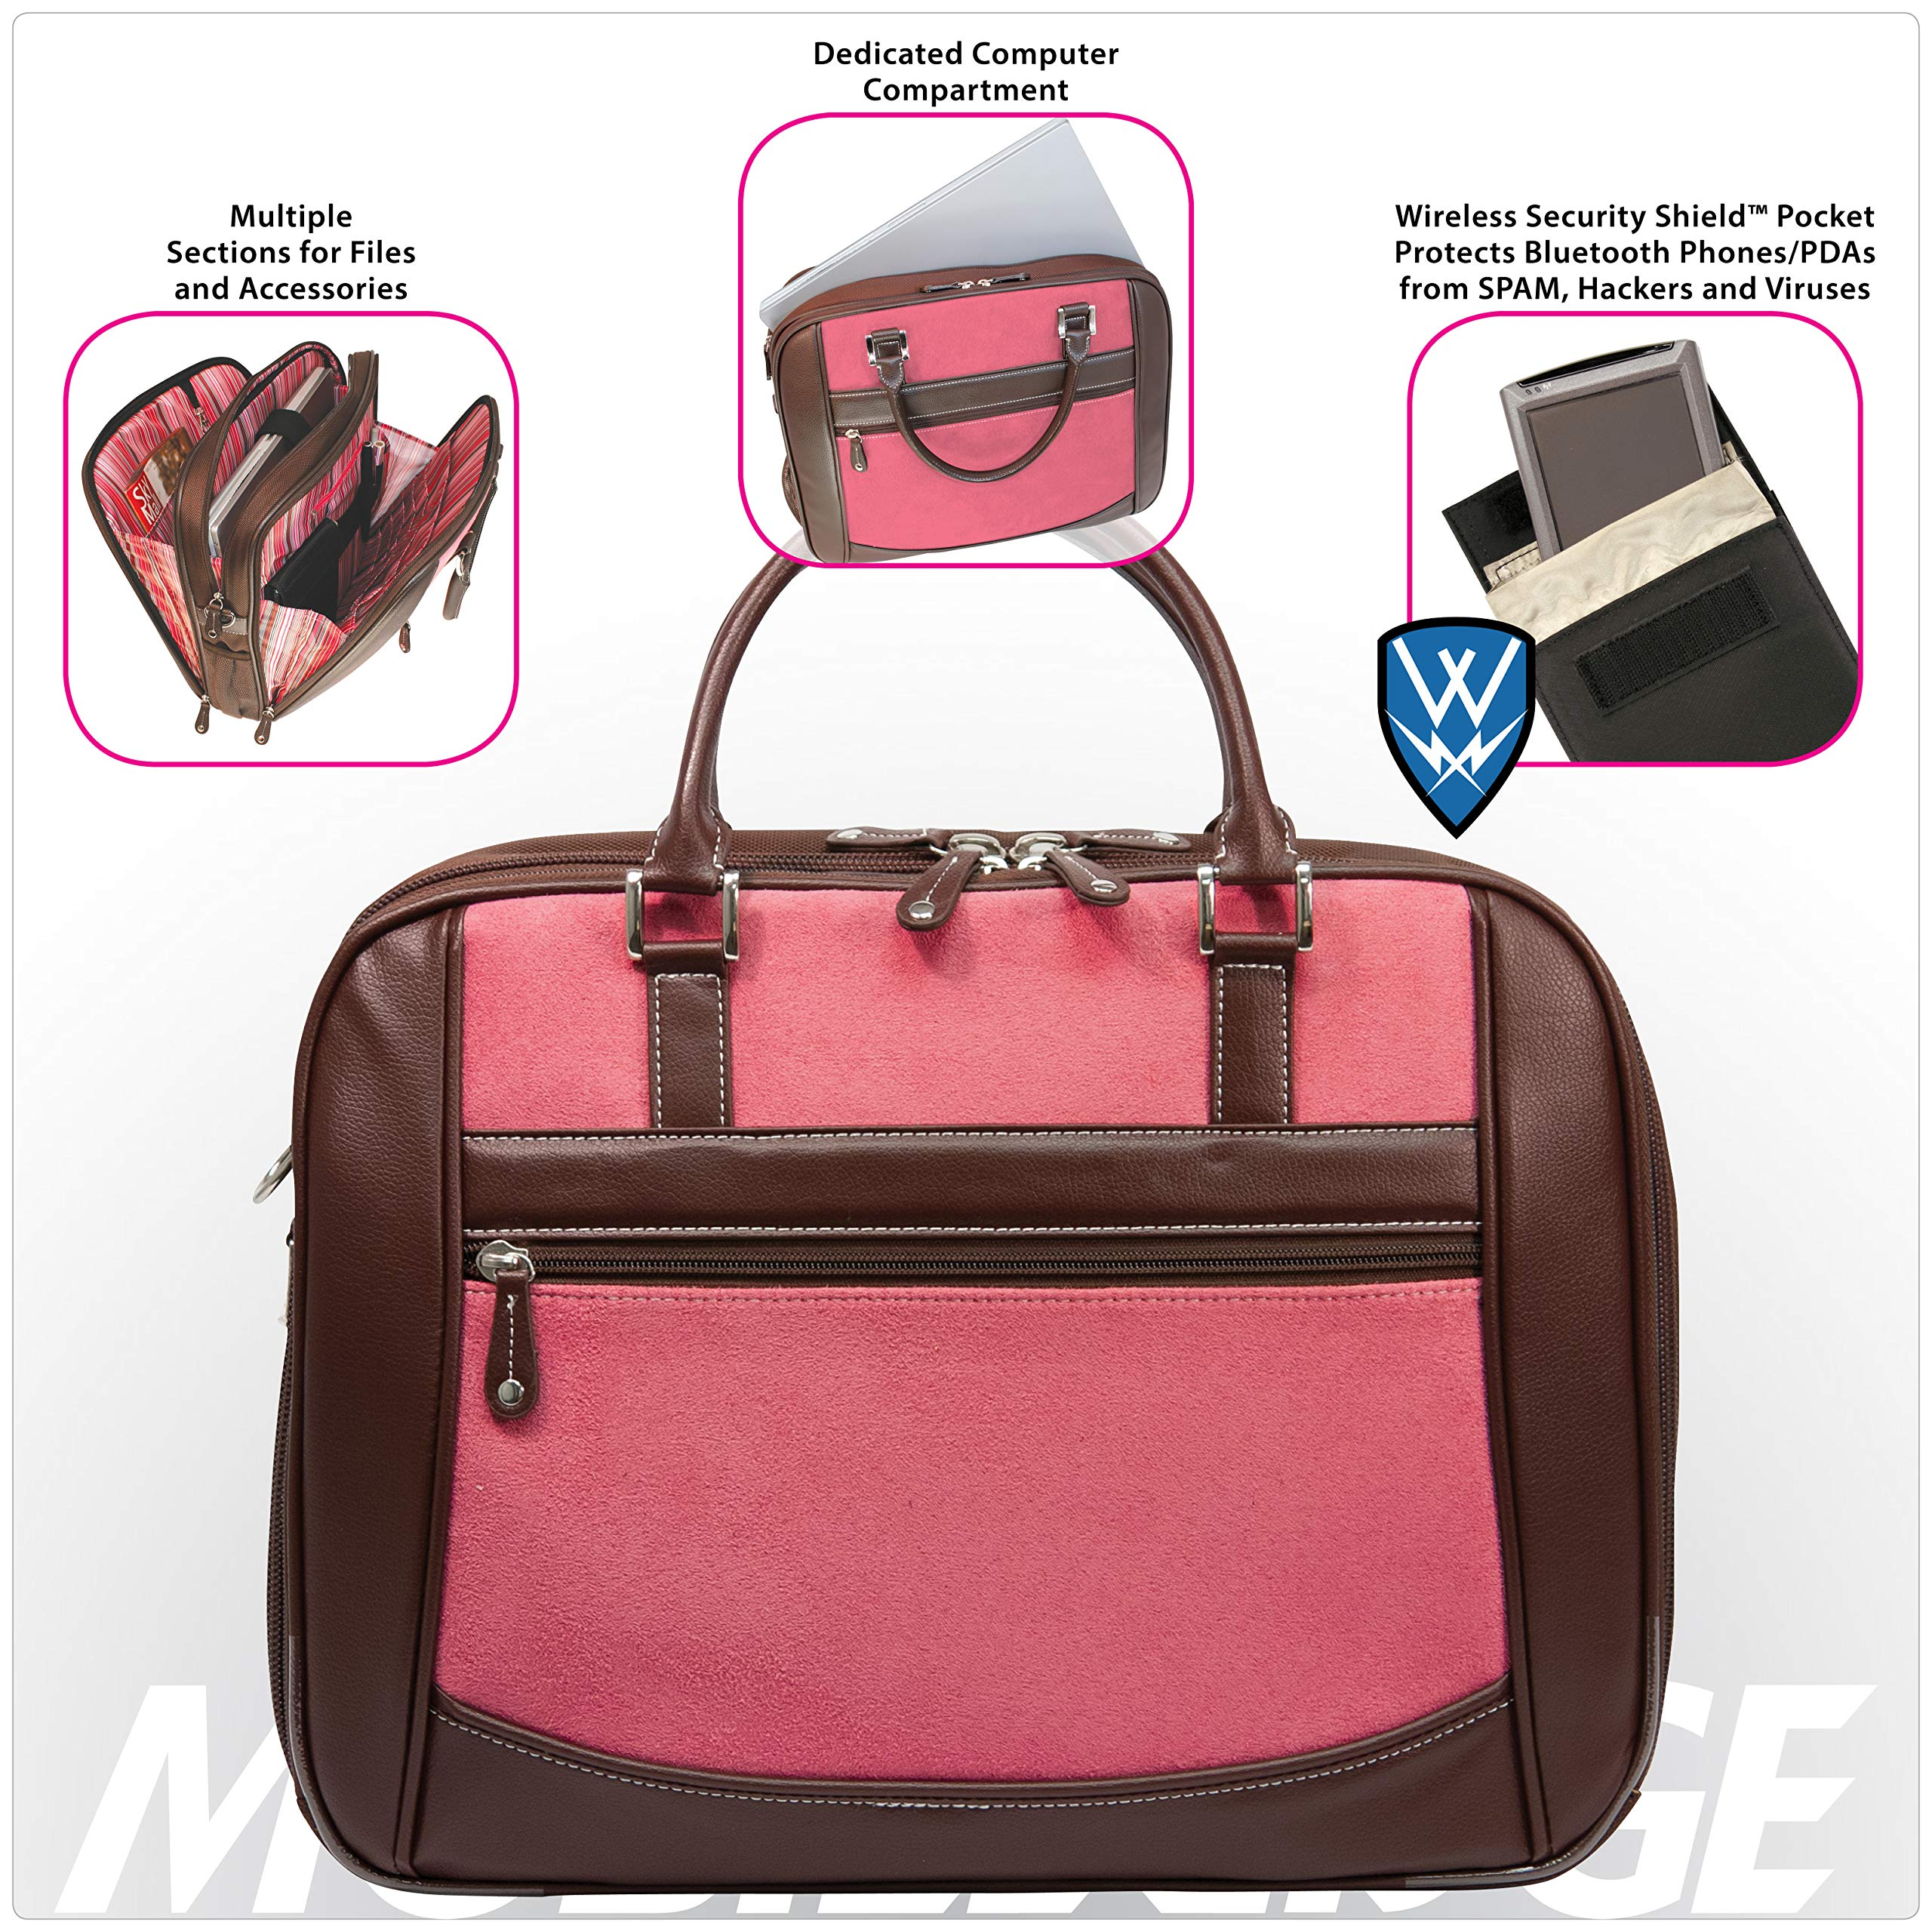 Mobile Edge Women's Black w/Pink, Checkpoint Friendly Element Laptop Briefcase 16 Inch PC, 17 Inch MacBook, Business, Travel MESFEBX by Mobile Edge (Image #3)